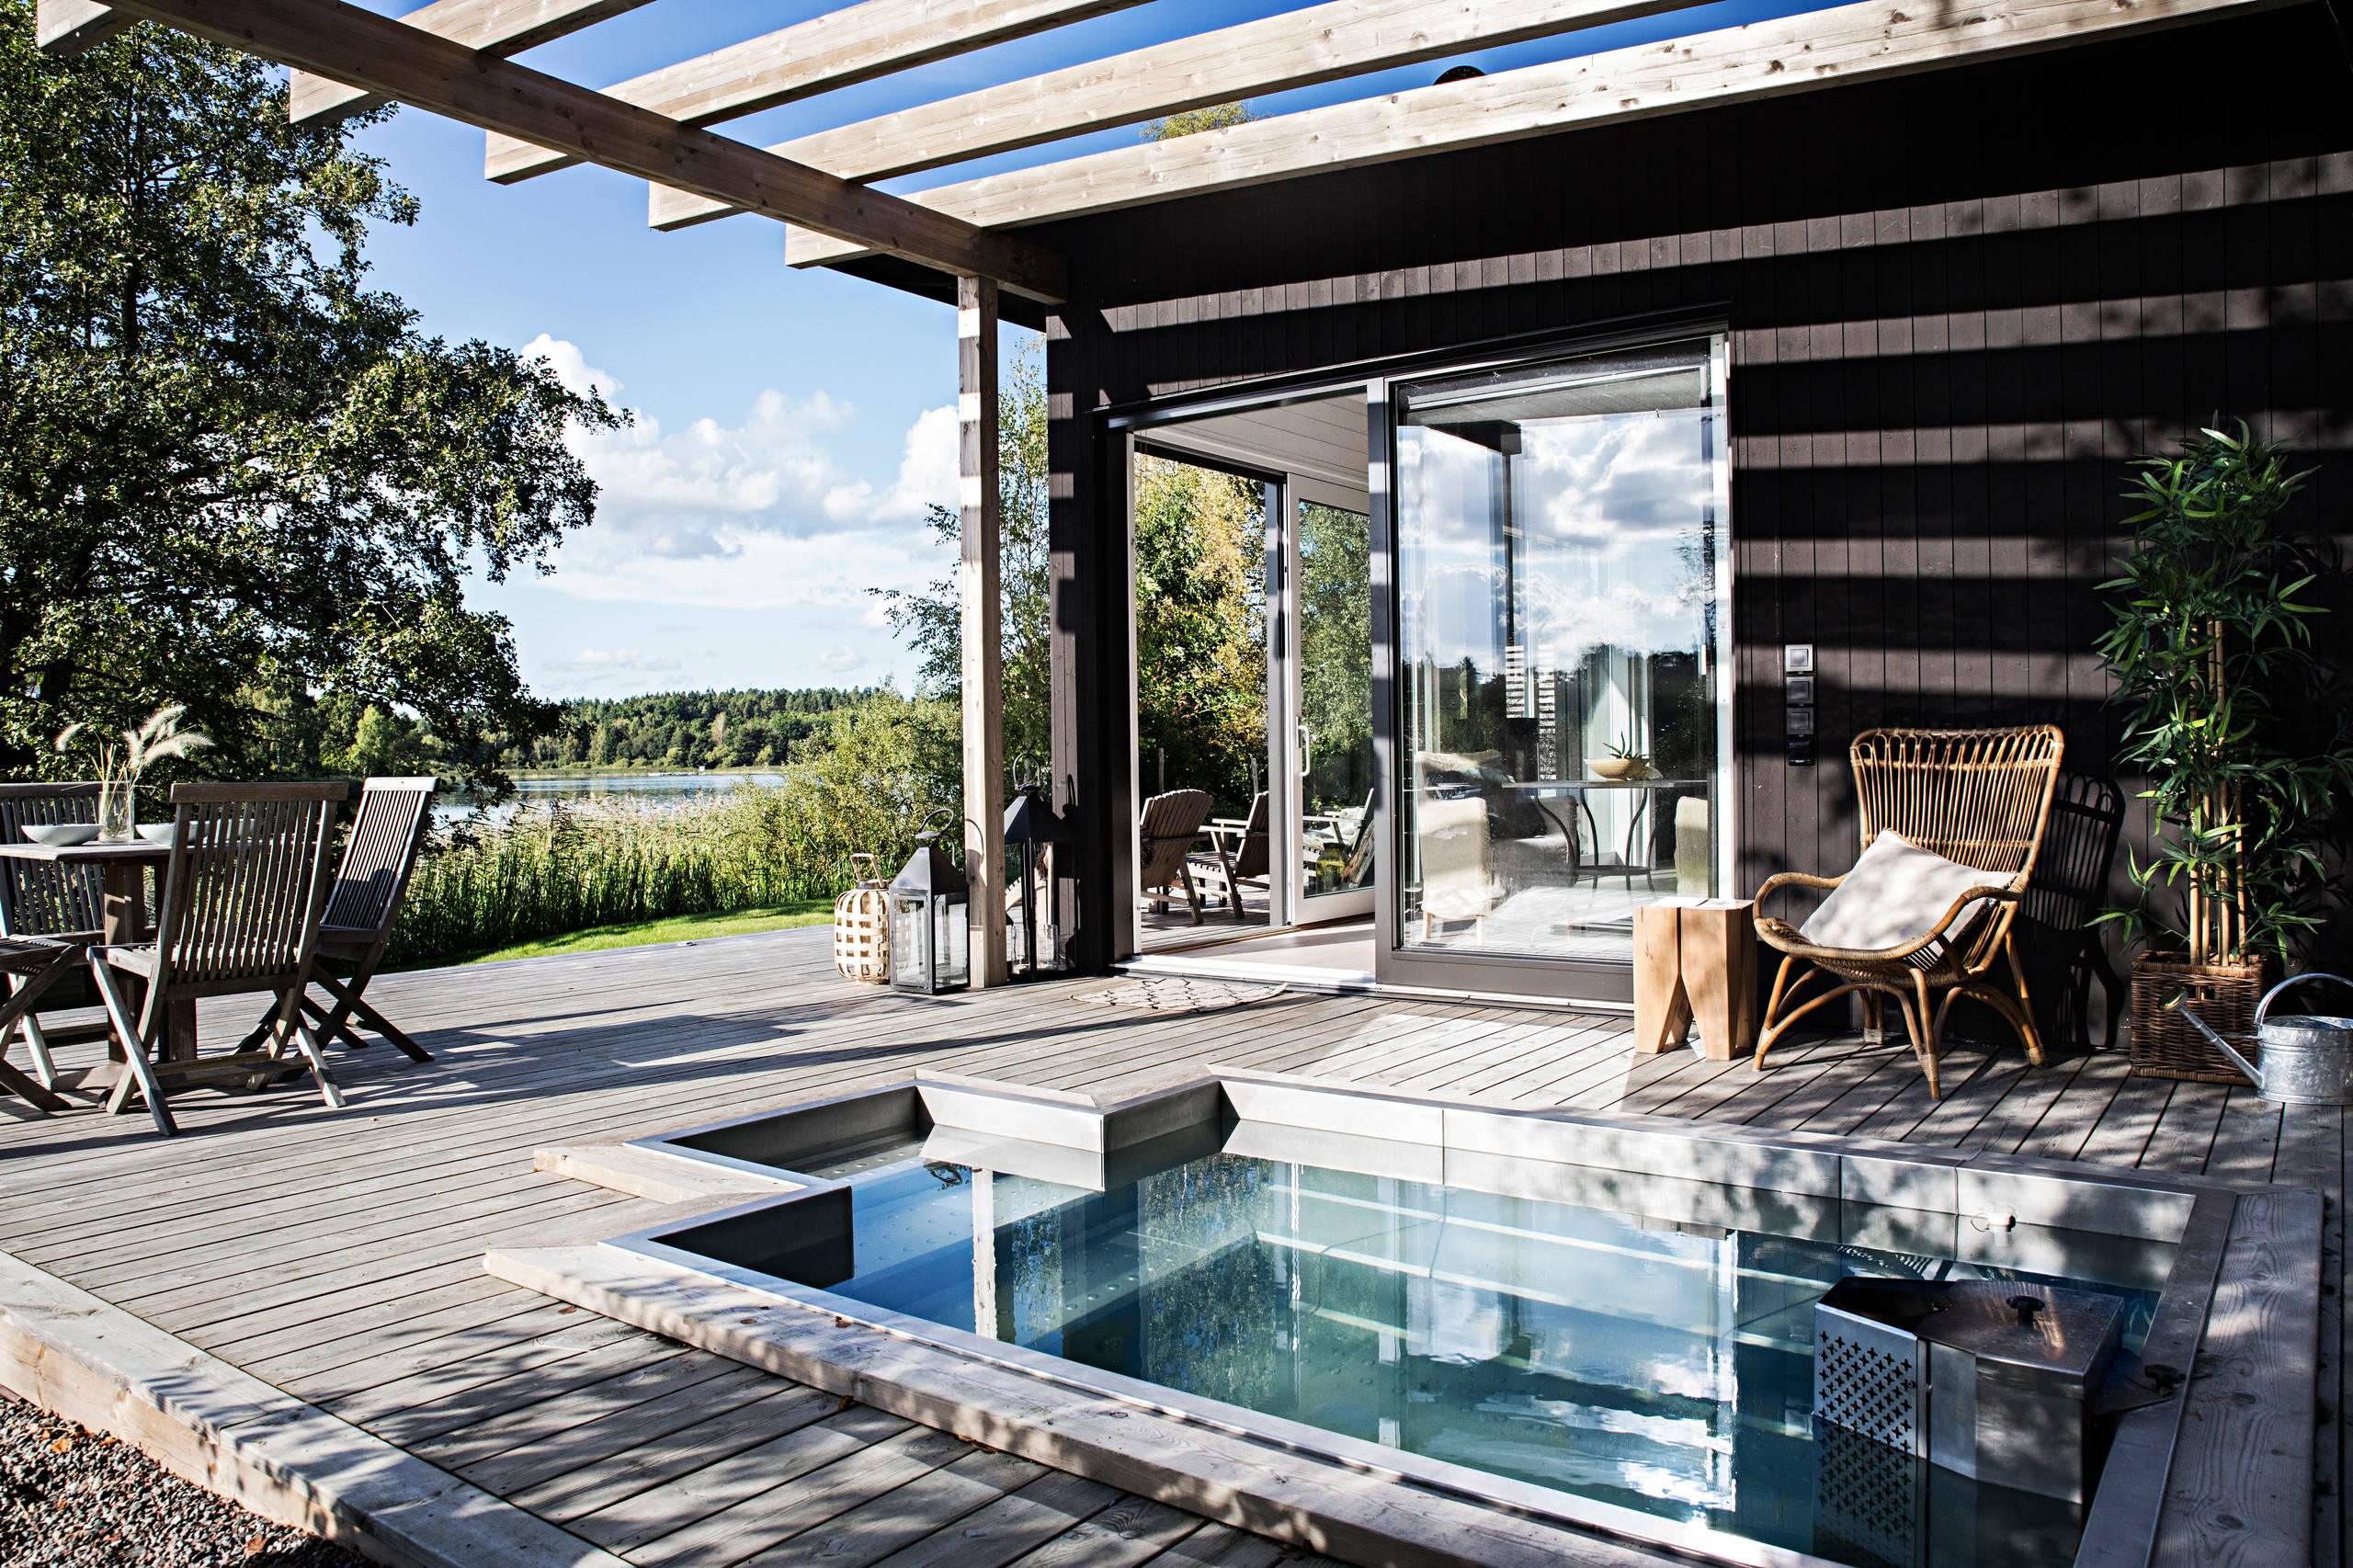 15 Stunning Scandinavian Pool Designs That You'll Want To Have In Your Backyard